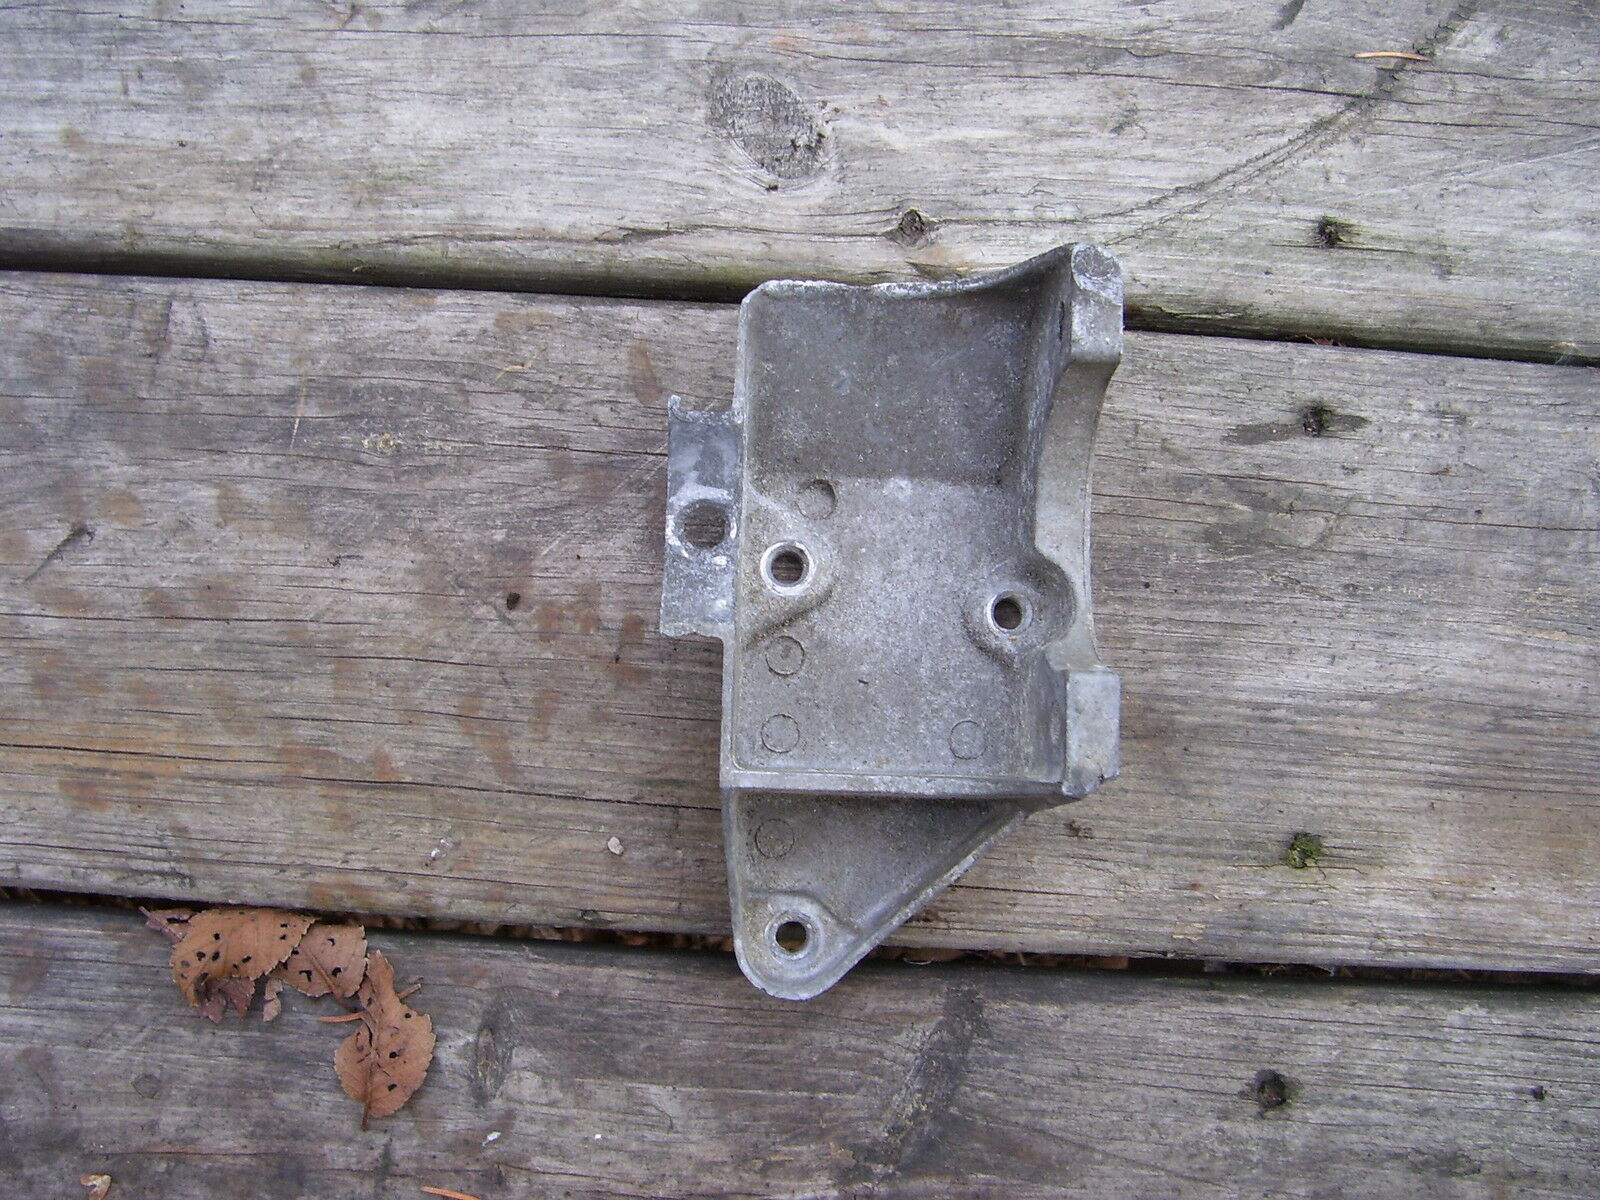 Toro S200 Snow Blower Engine Electric Starter Motor Mounting Bracket 51 2990 Picclick